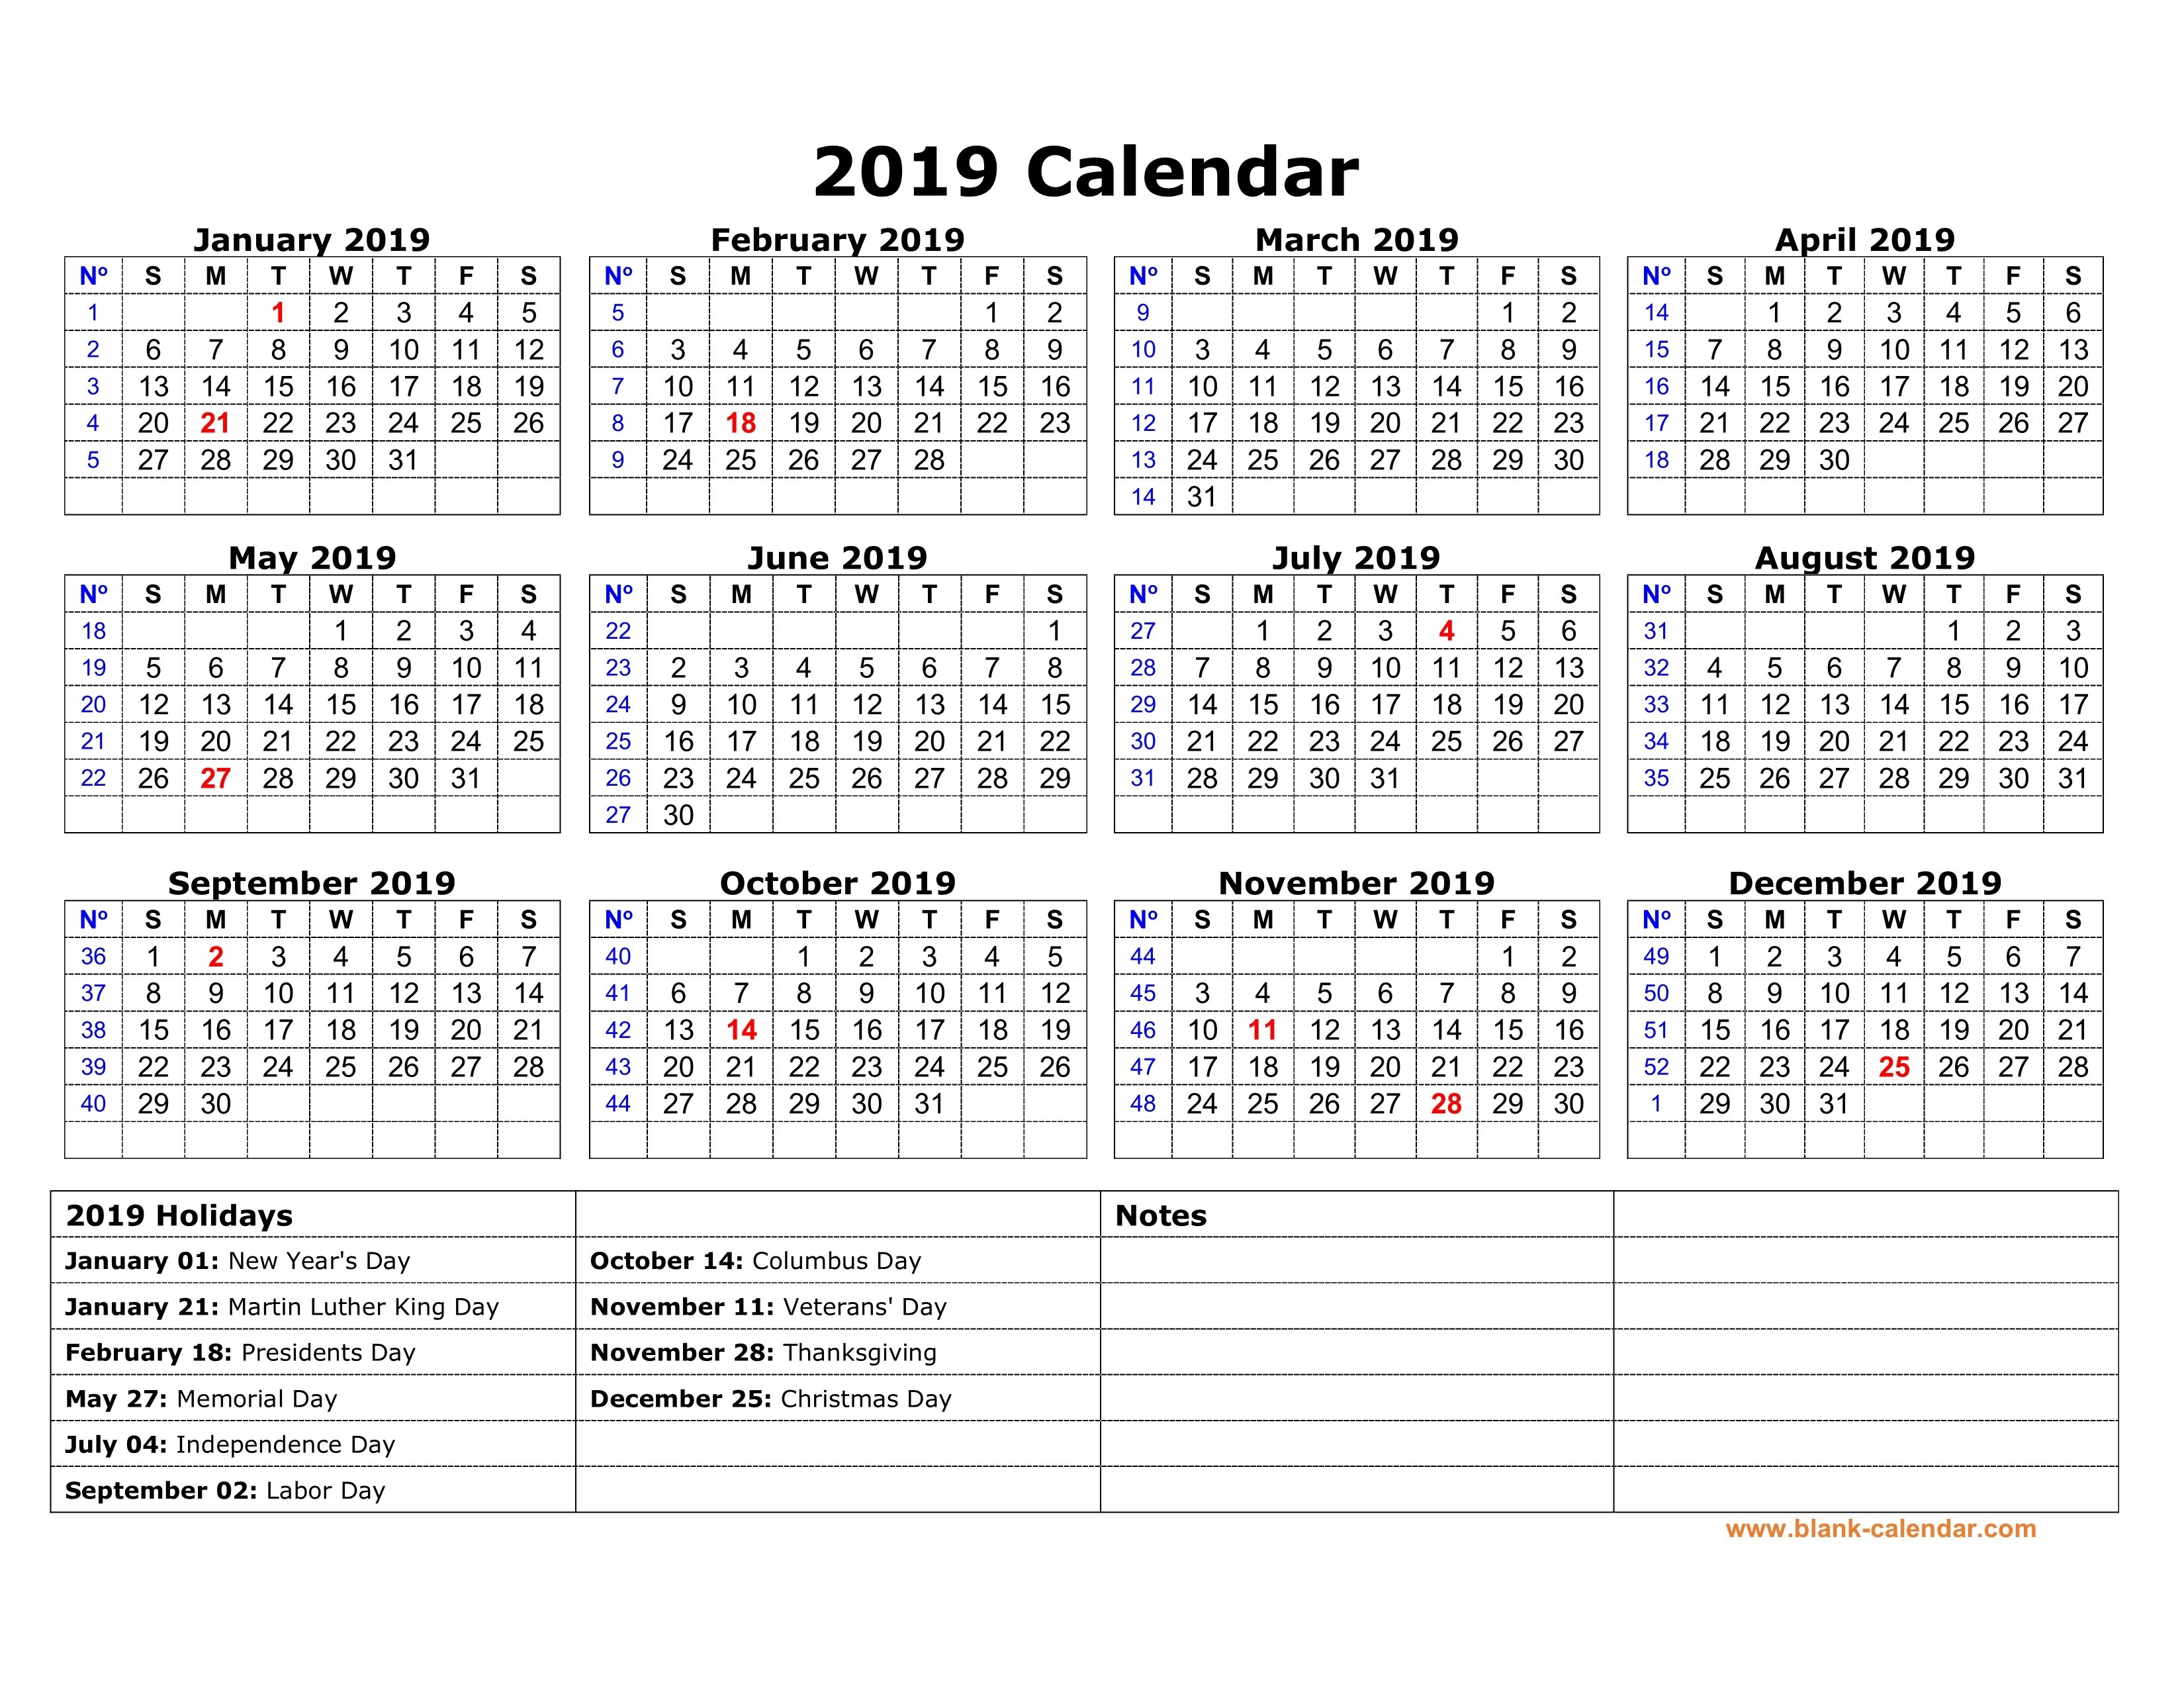 Free Download Printable Calendar 2019 With Us Federal Holidays, One Calendar 2019 With All Holidays